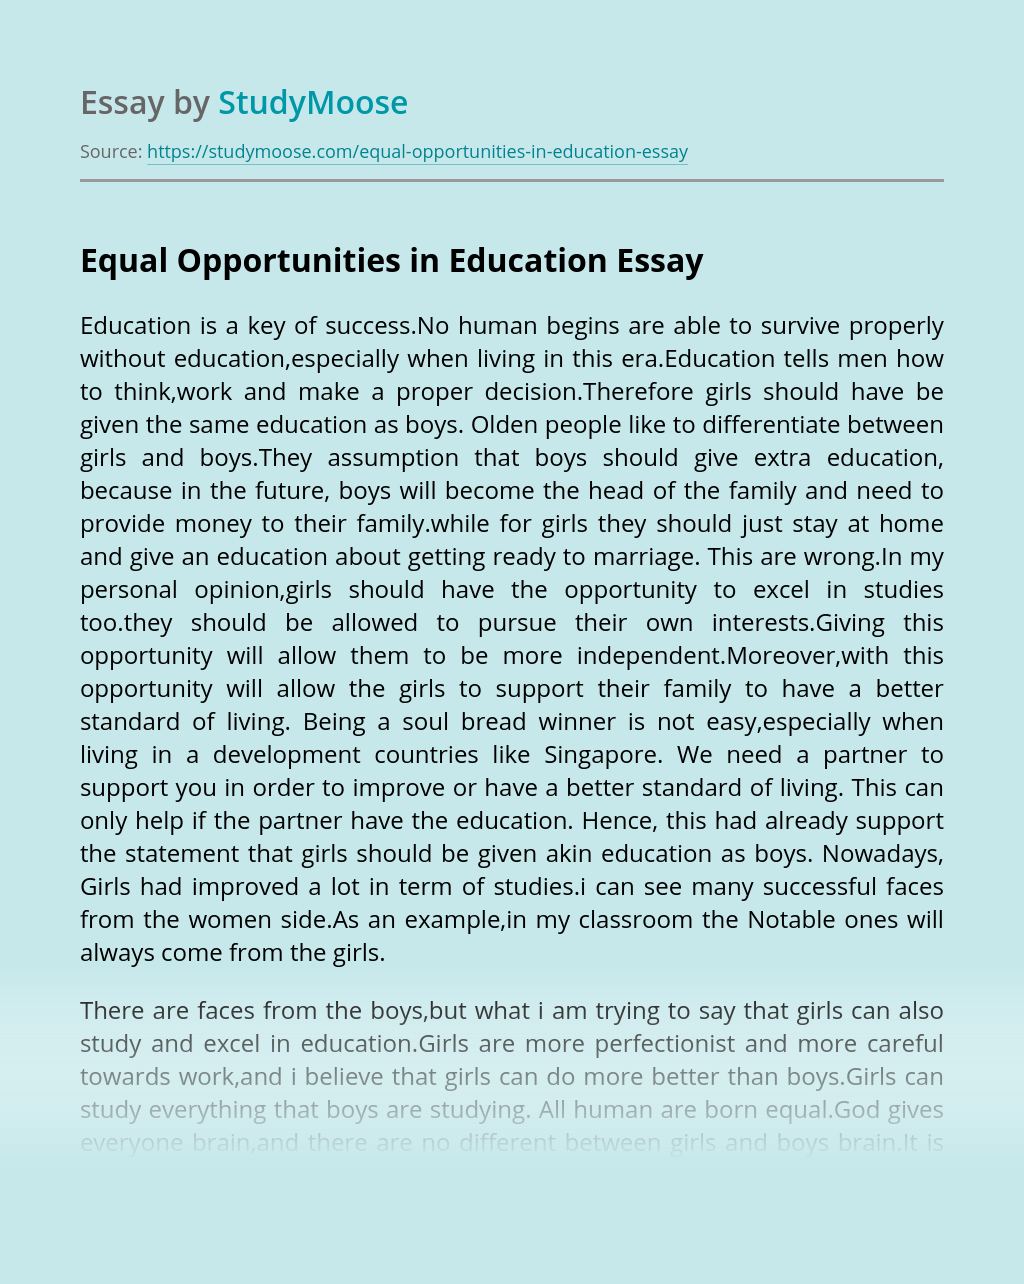 Equal Opportunities in Education